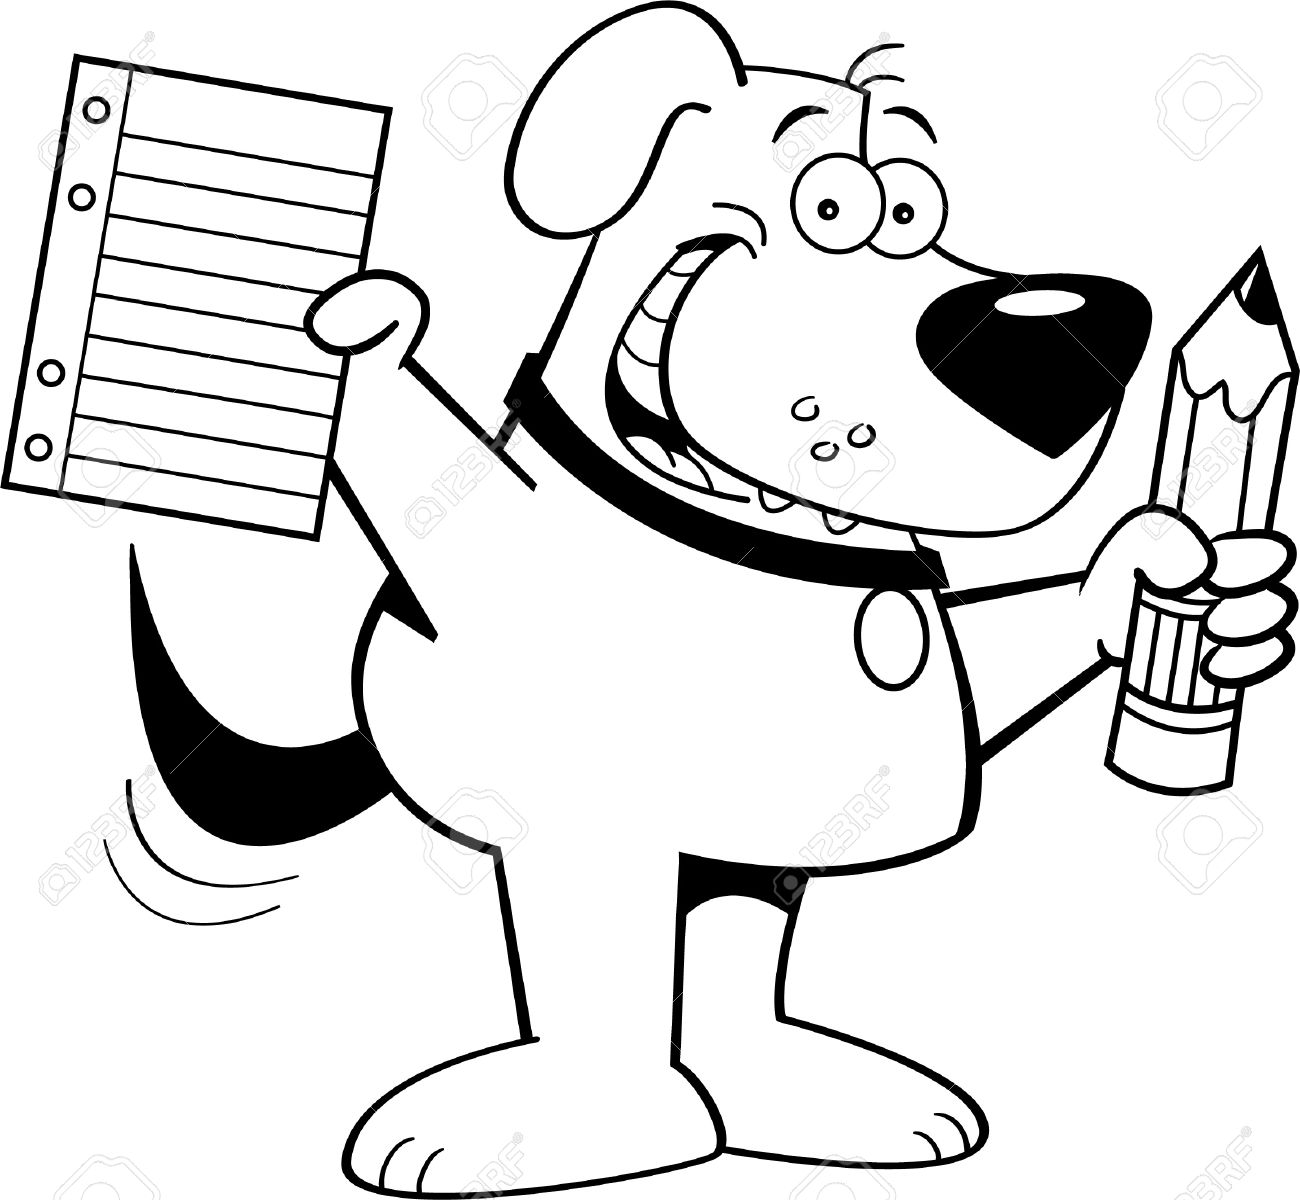 Black And White Illustration Of A Dog Holding A Pencil And Paper.